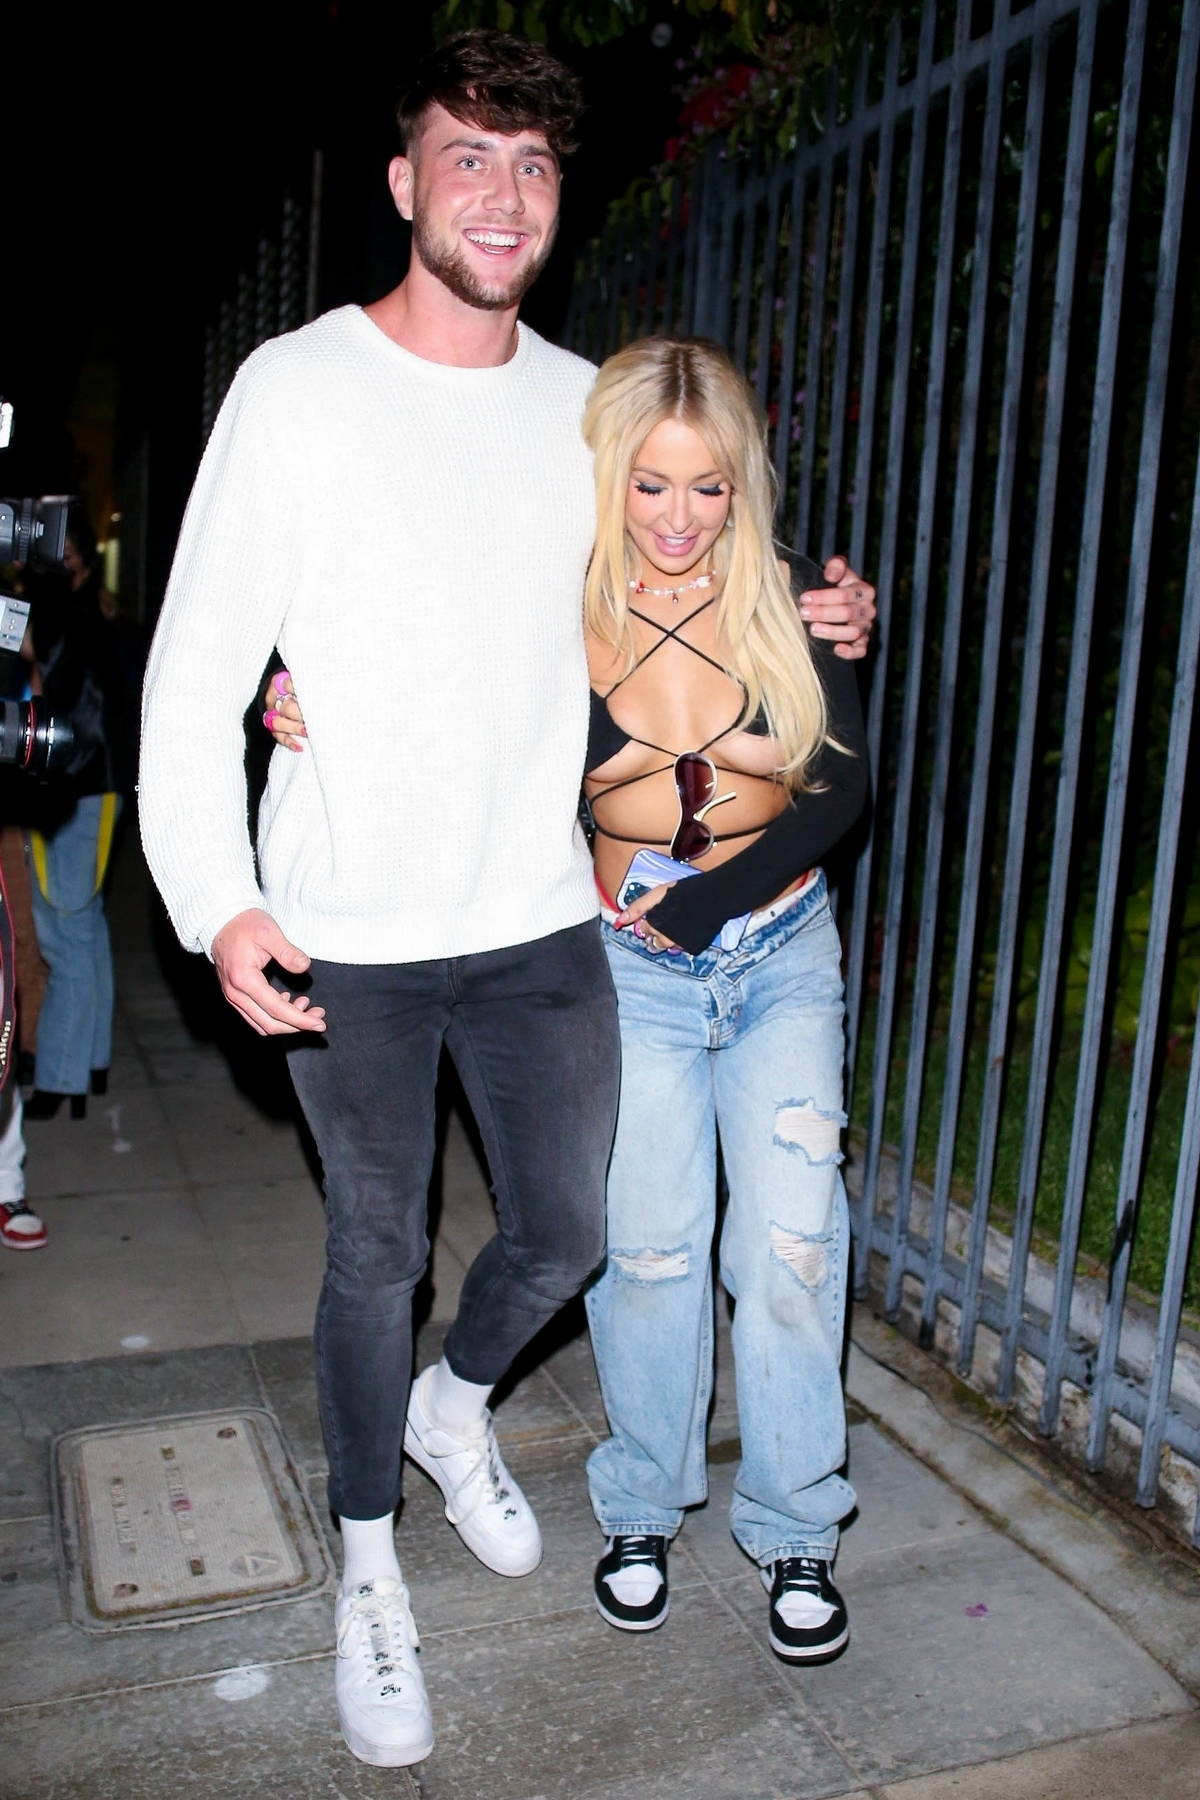 Tana Mongeau and Harry Jowsey get cozy while attending a private party in Hollywood, California